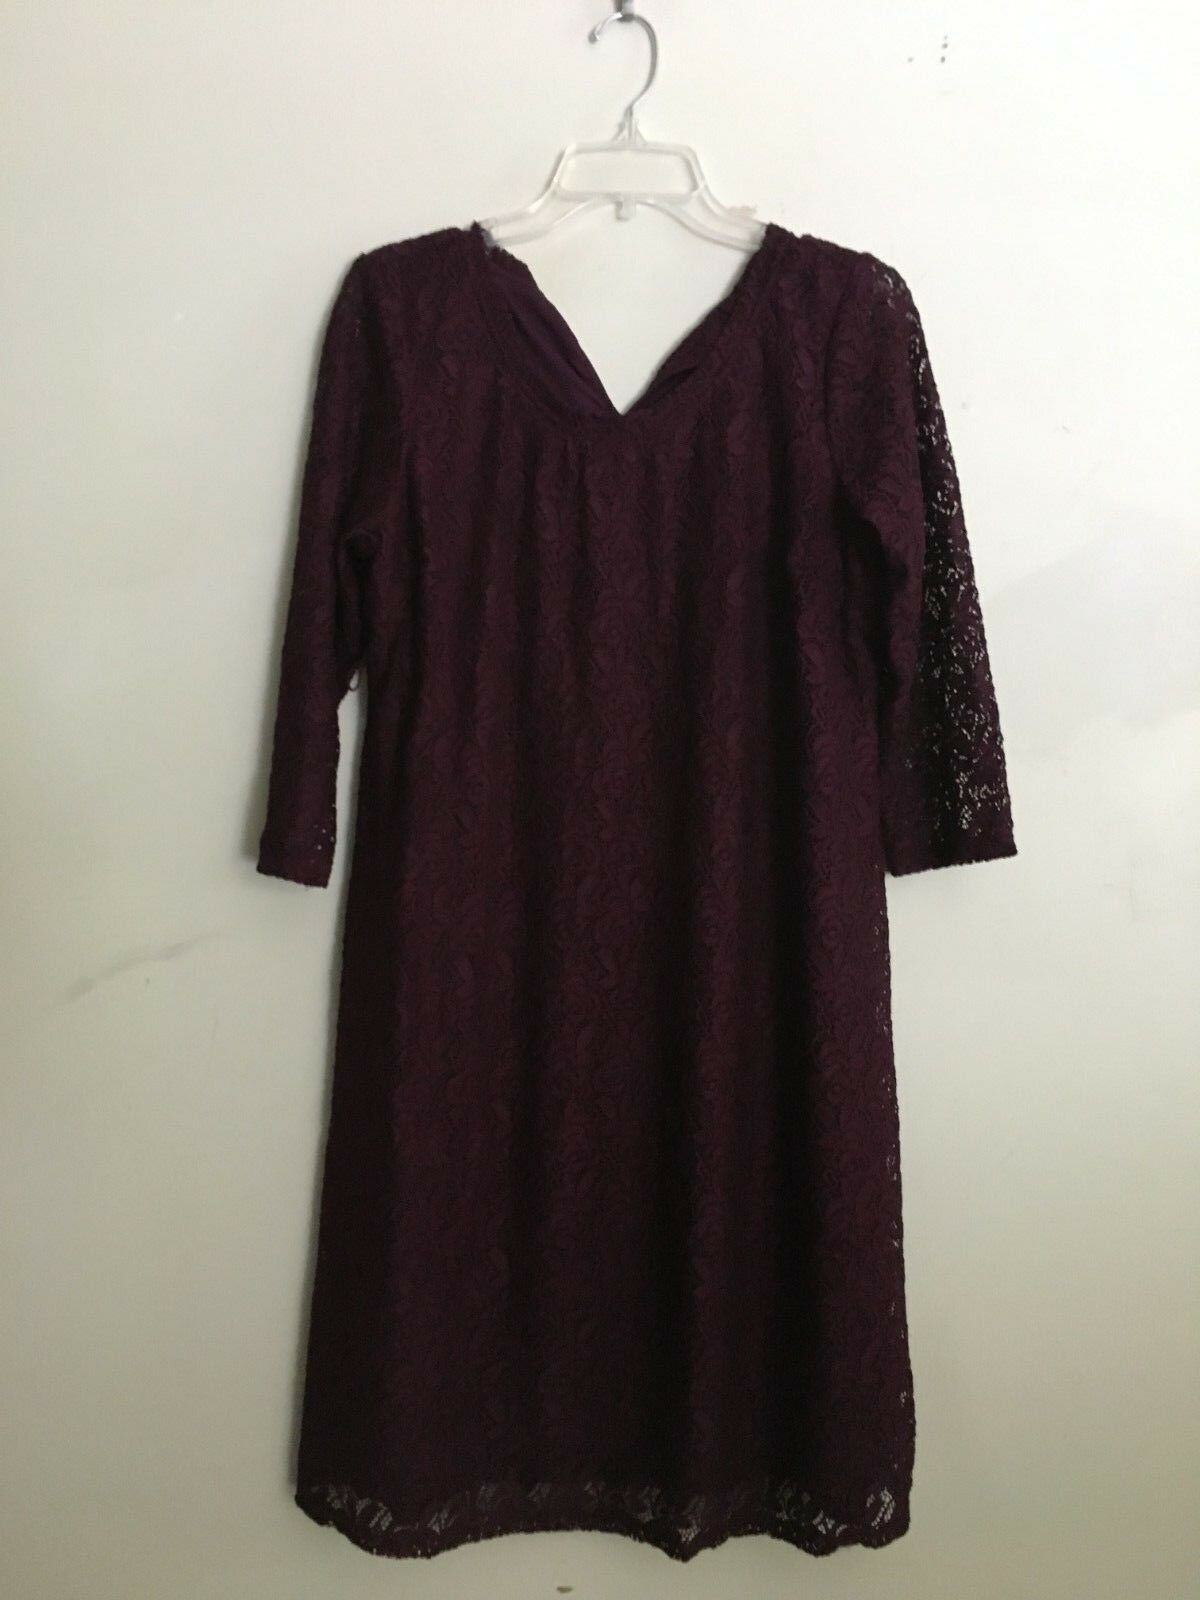 Oh Baby Motherhood Maternity Plum Lace Dress Women Size L Formal Modern Stylish